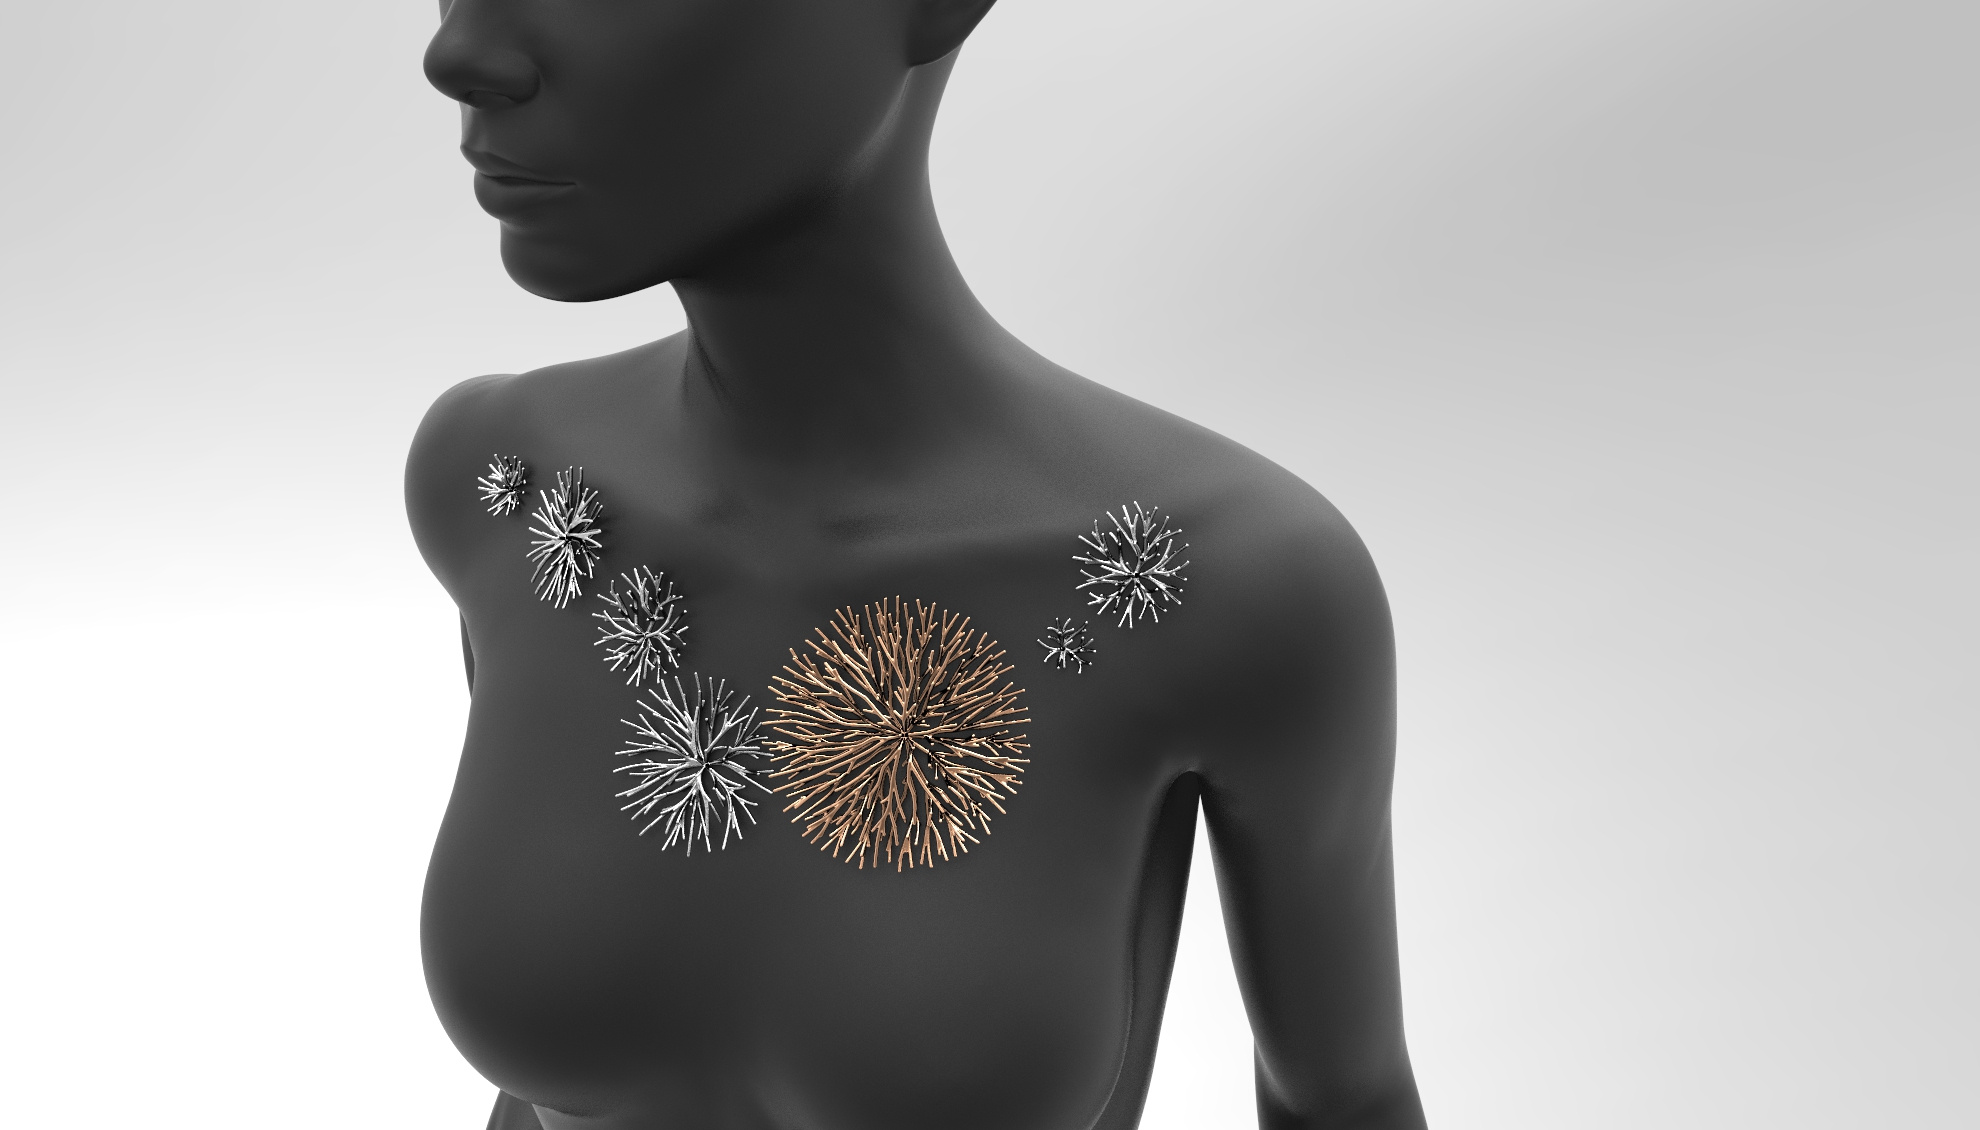 zimarty_3dprint_jewelry_wearable_architecture